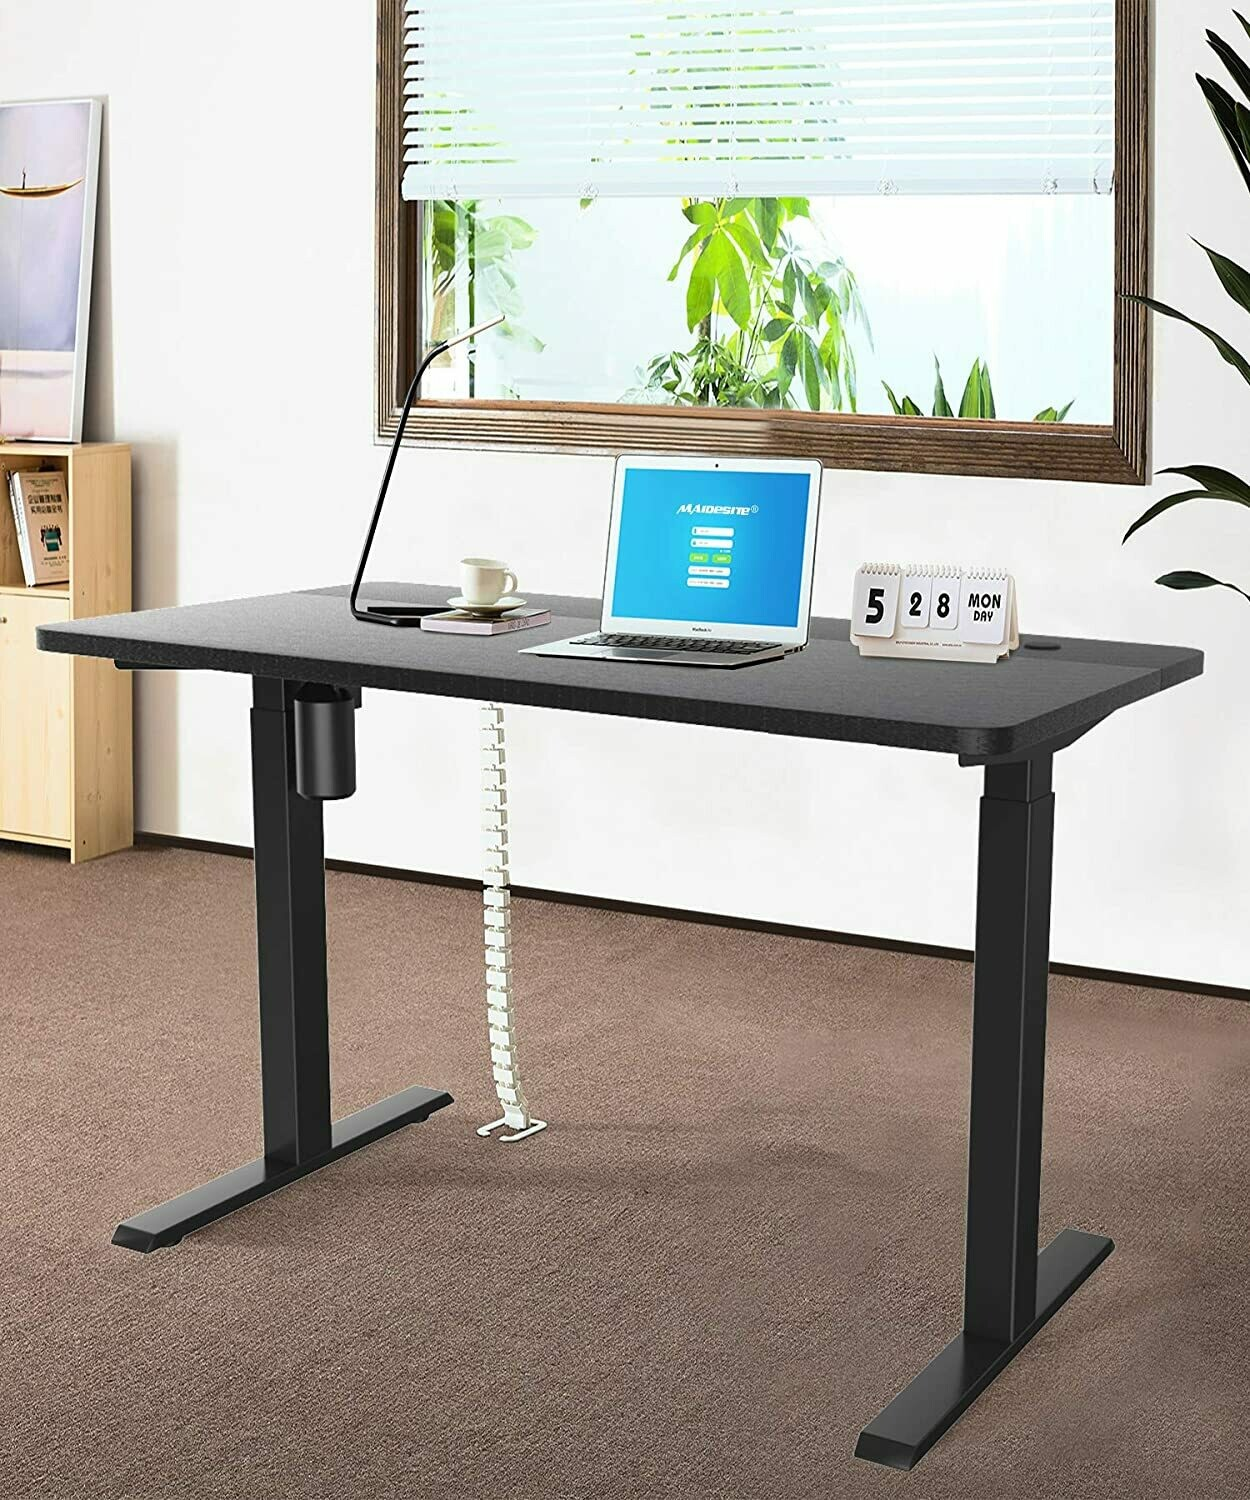 Maidesite Electric Height Adjustable Computer Desk Ergonomic Memory Controller Standing Height Adjustable Desk Top With 55